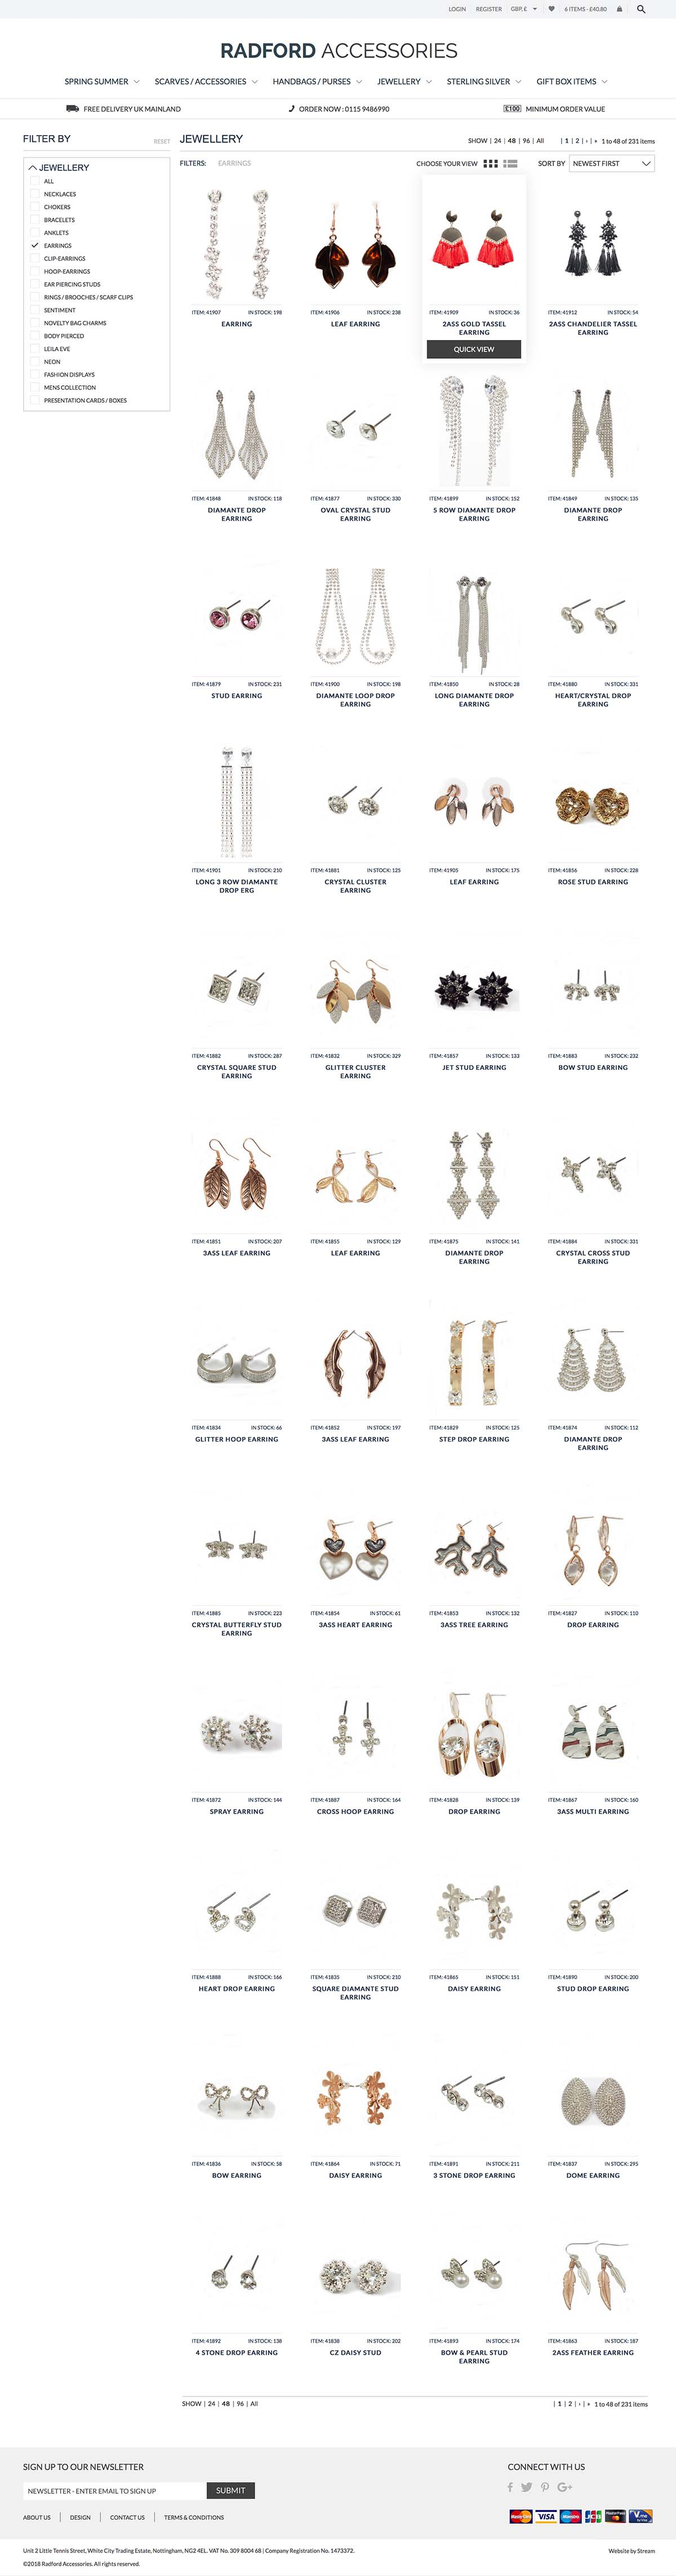 Fashion accessories ecommerce website for Radford Accessories